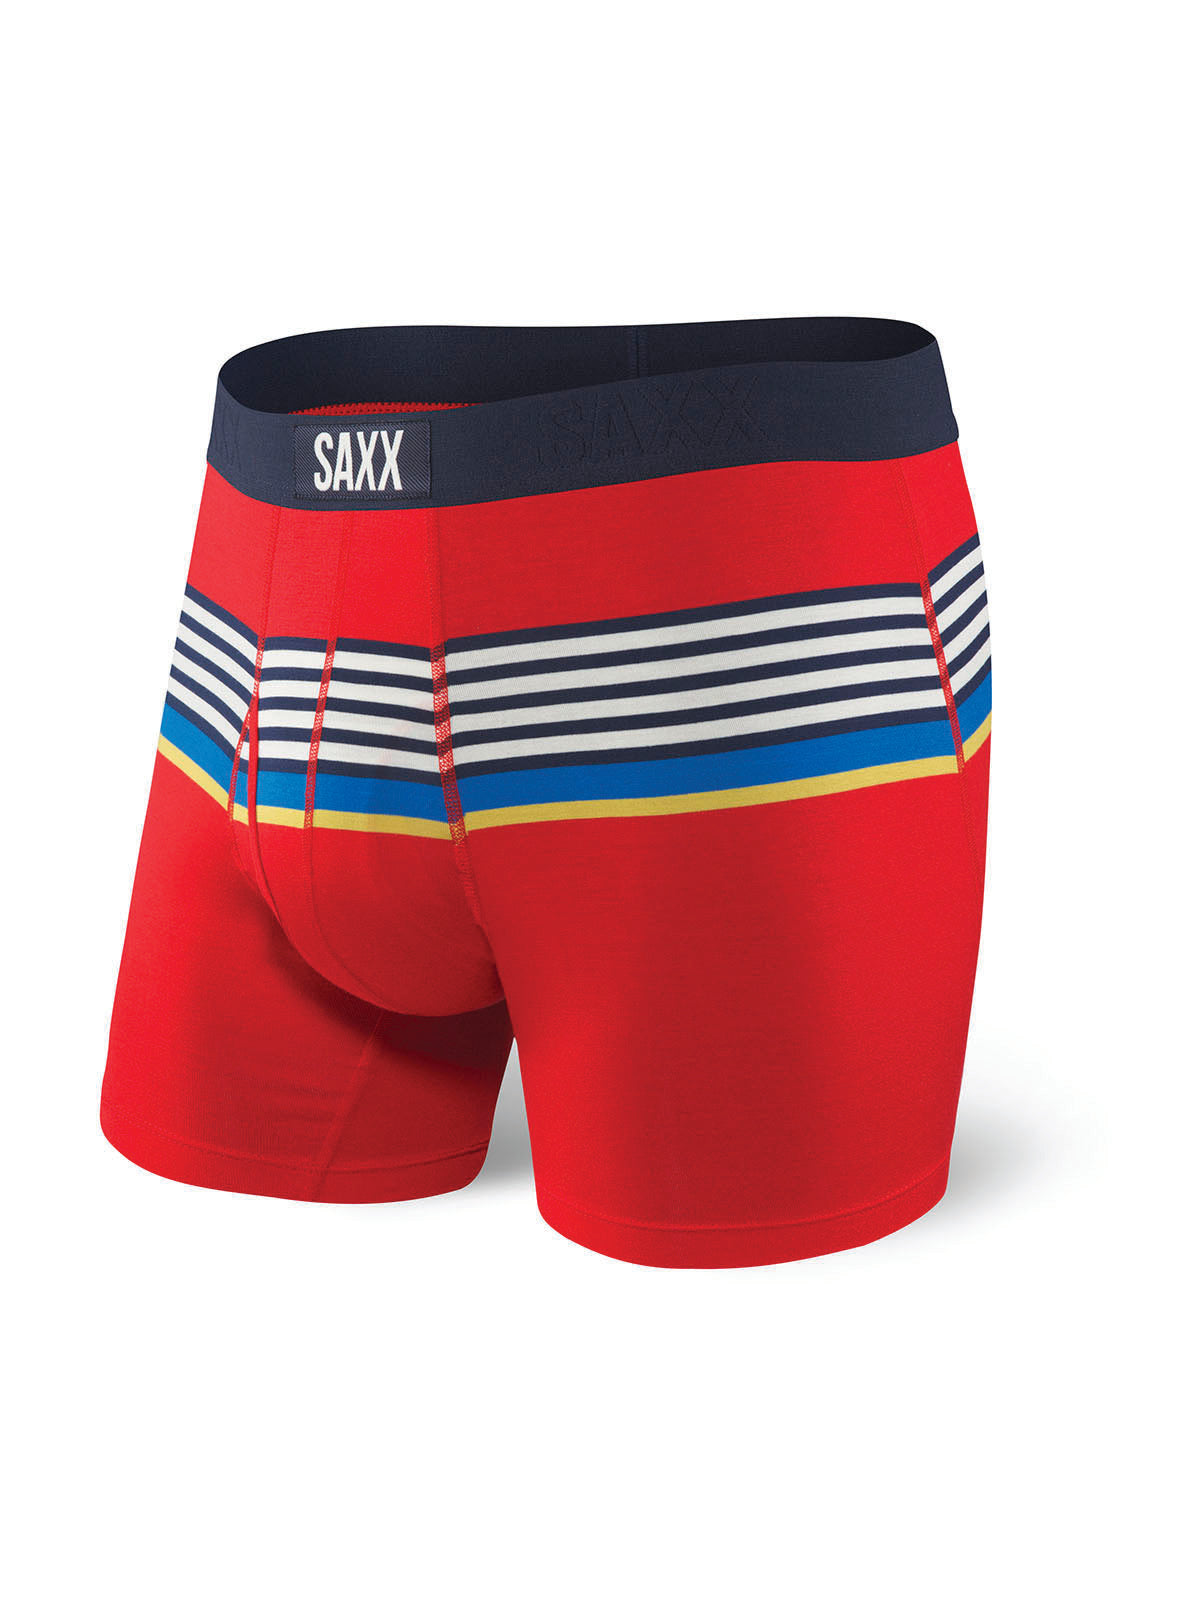 SAXX Ultra Boxer Brief With Fly SXBB30F